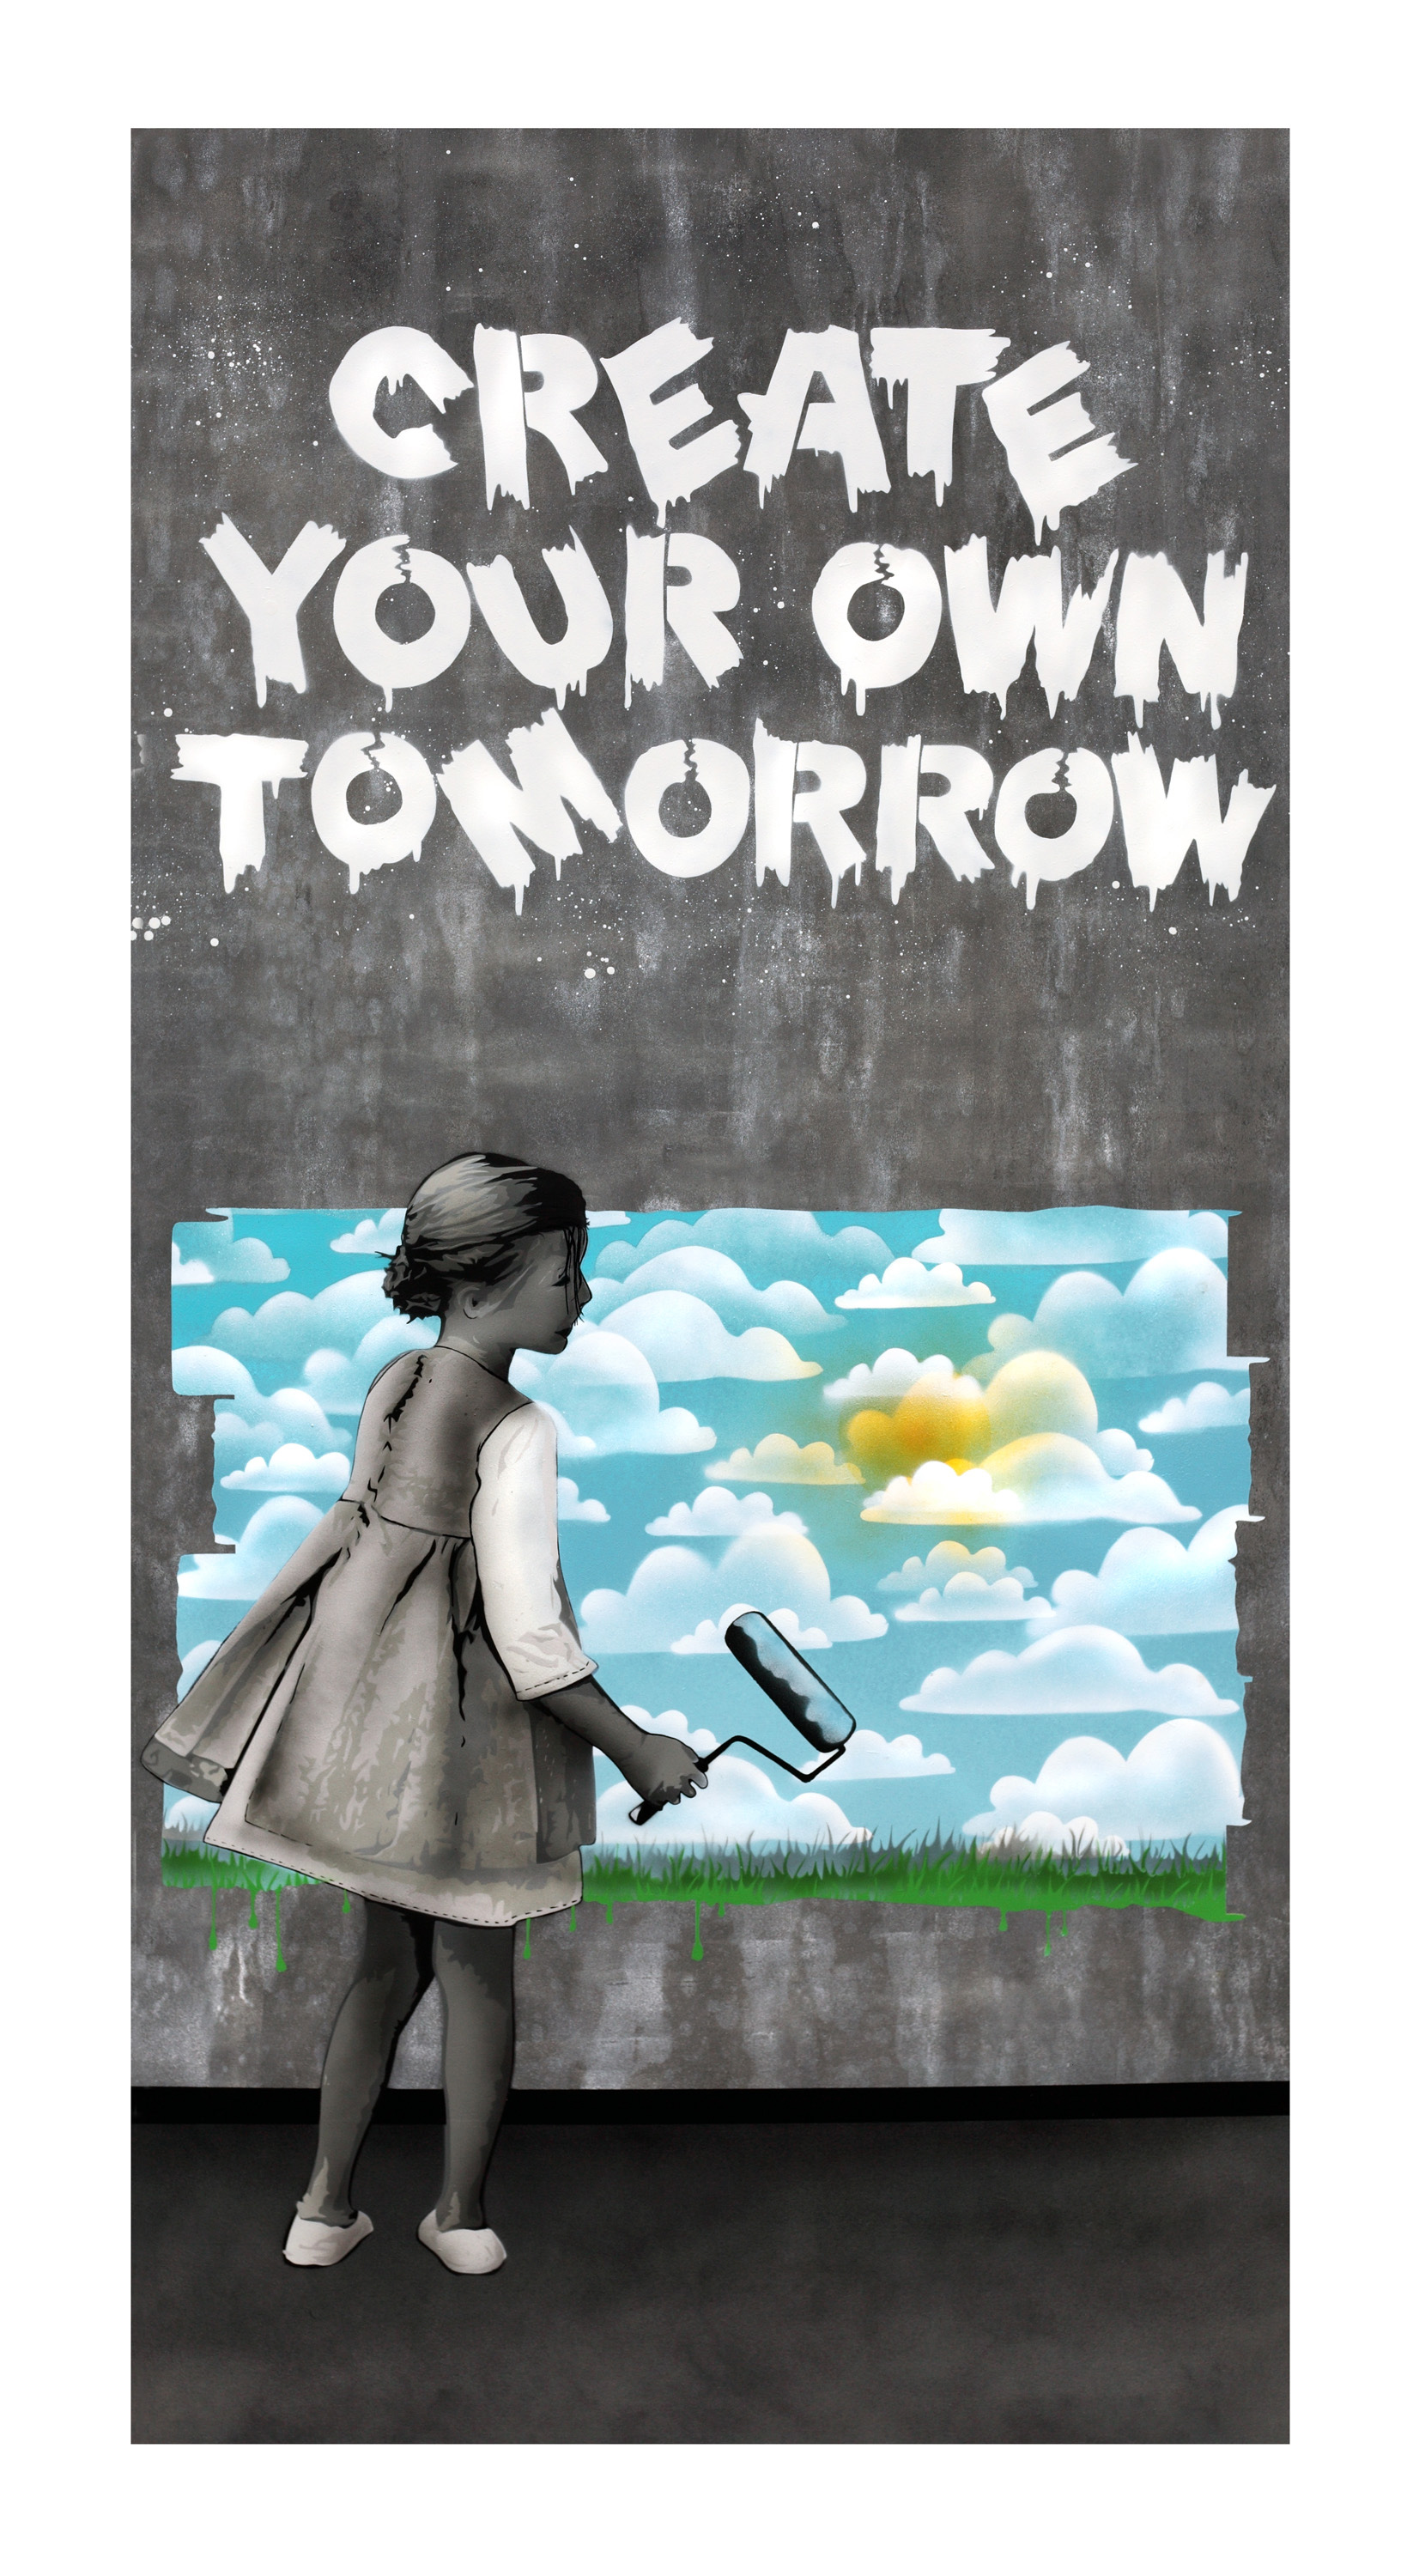 amber-press-release-create-your-own-tomorrow-pic